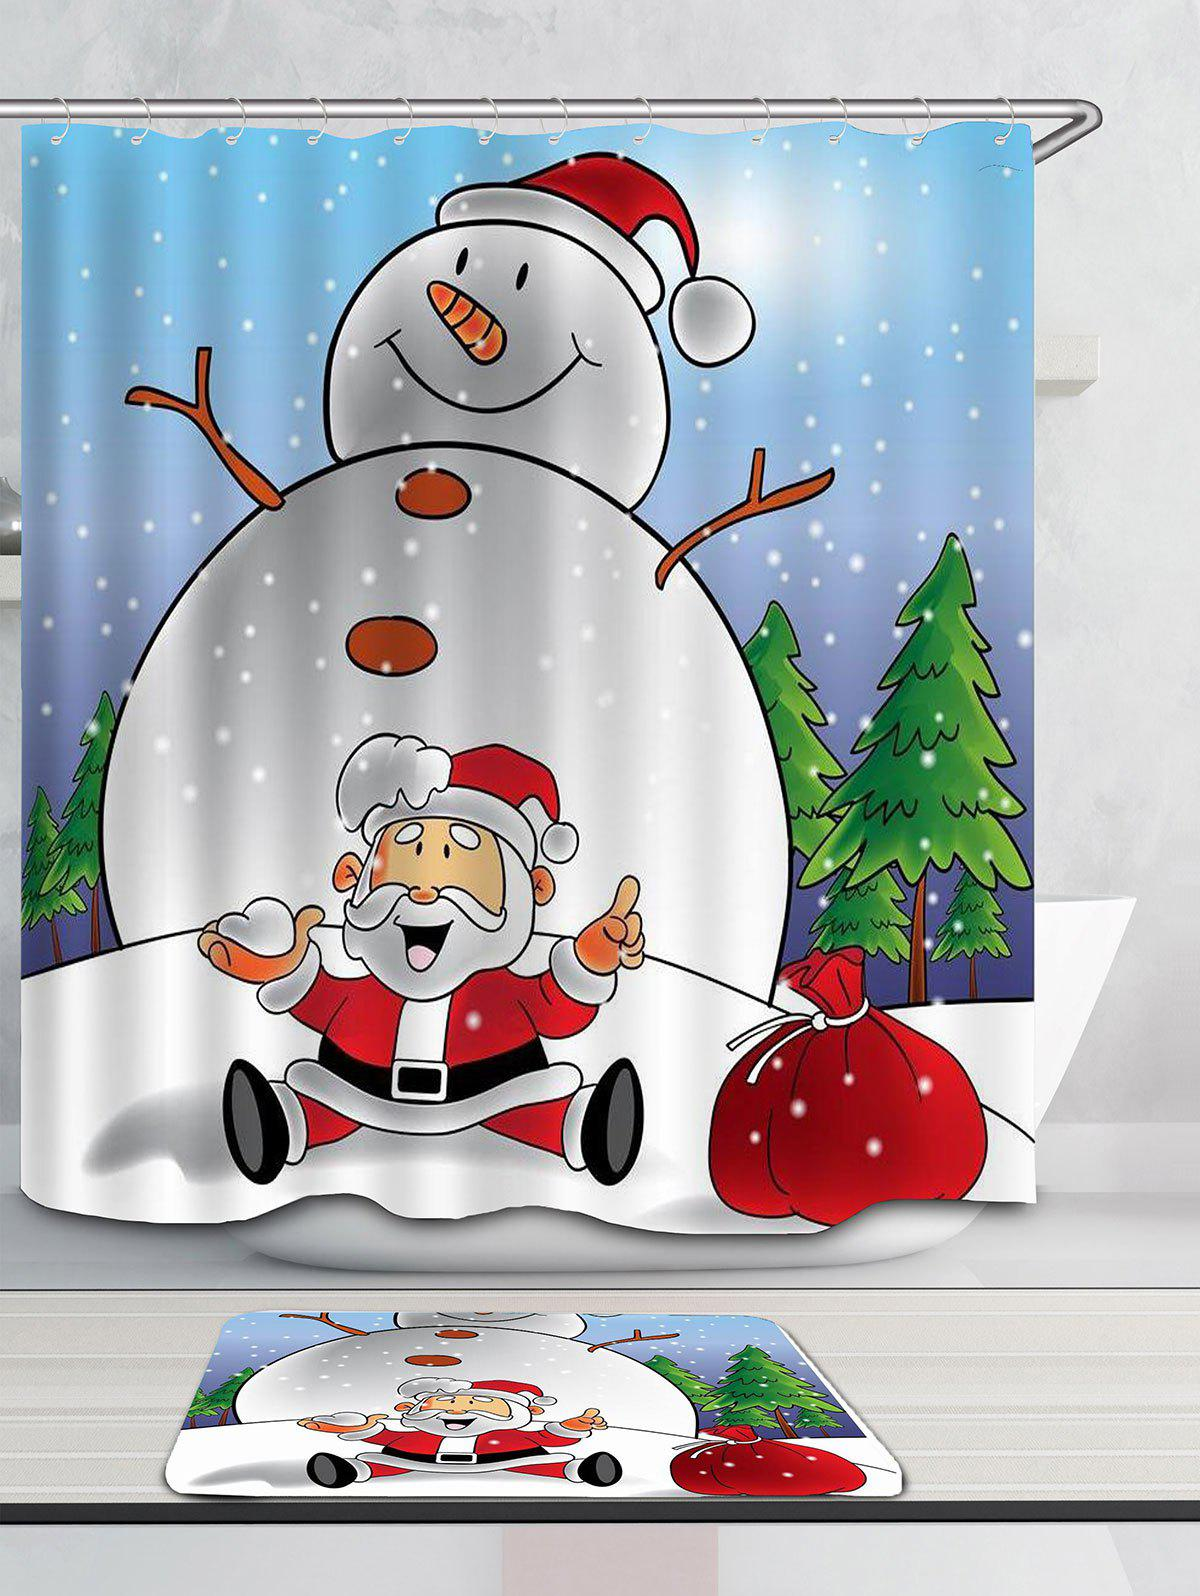 Snowman And Santa Claus Printed Shower Curtain - COLORFUL W71 INCH * L79 INCH